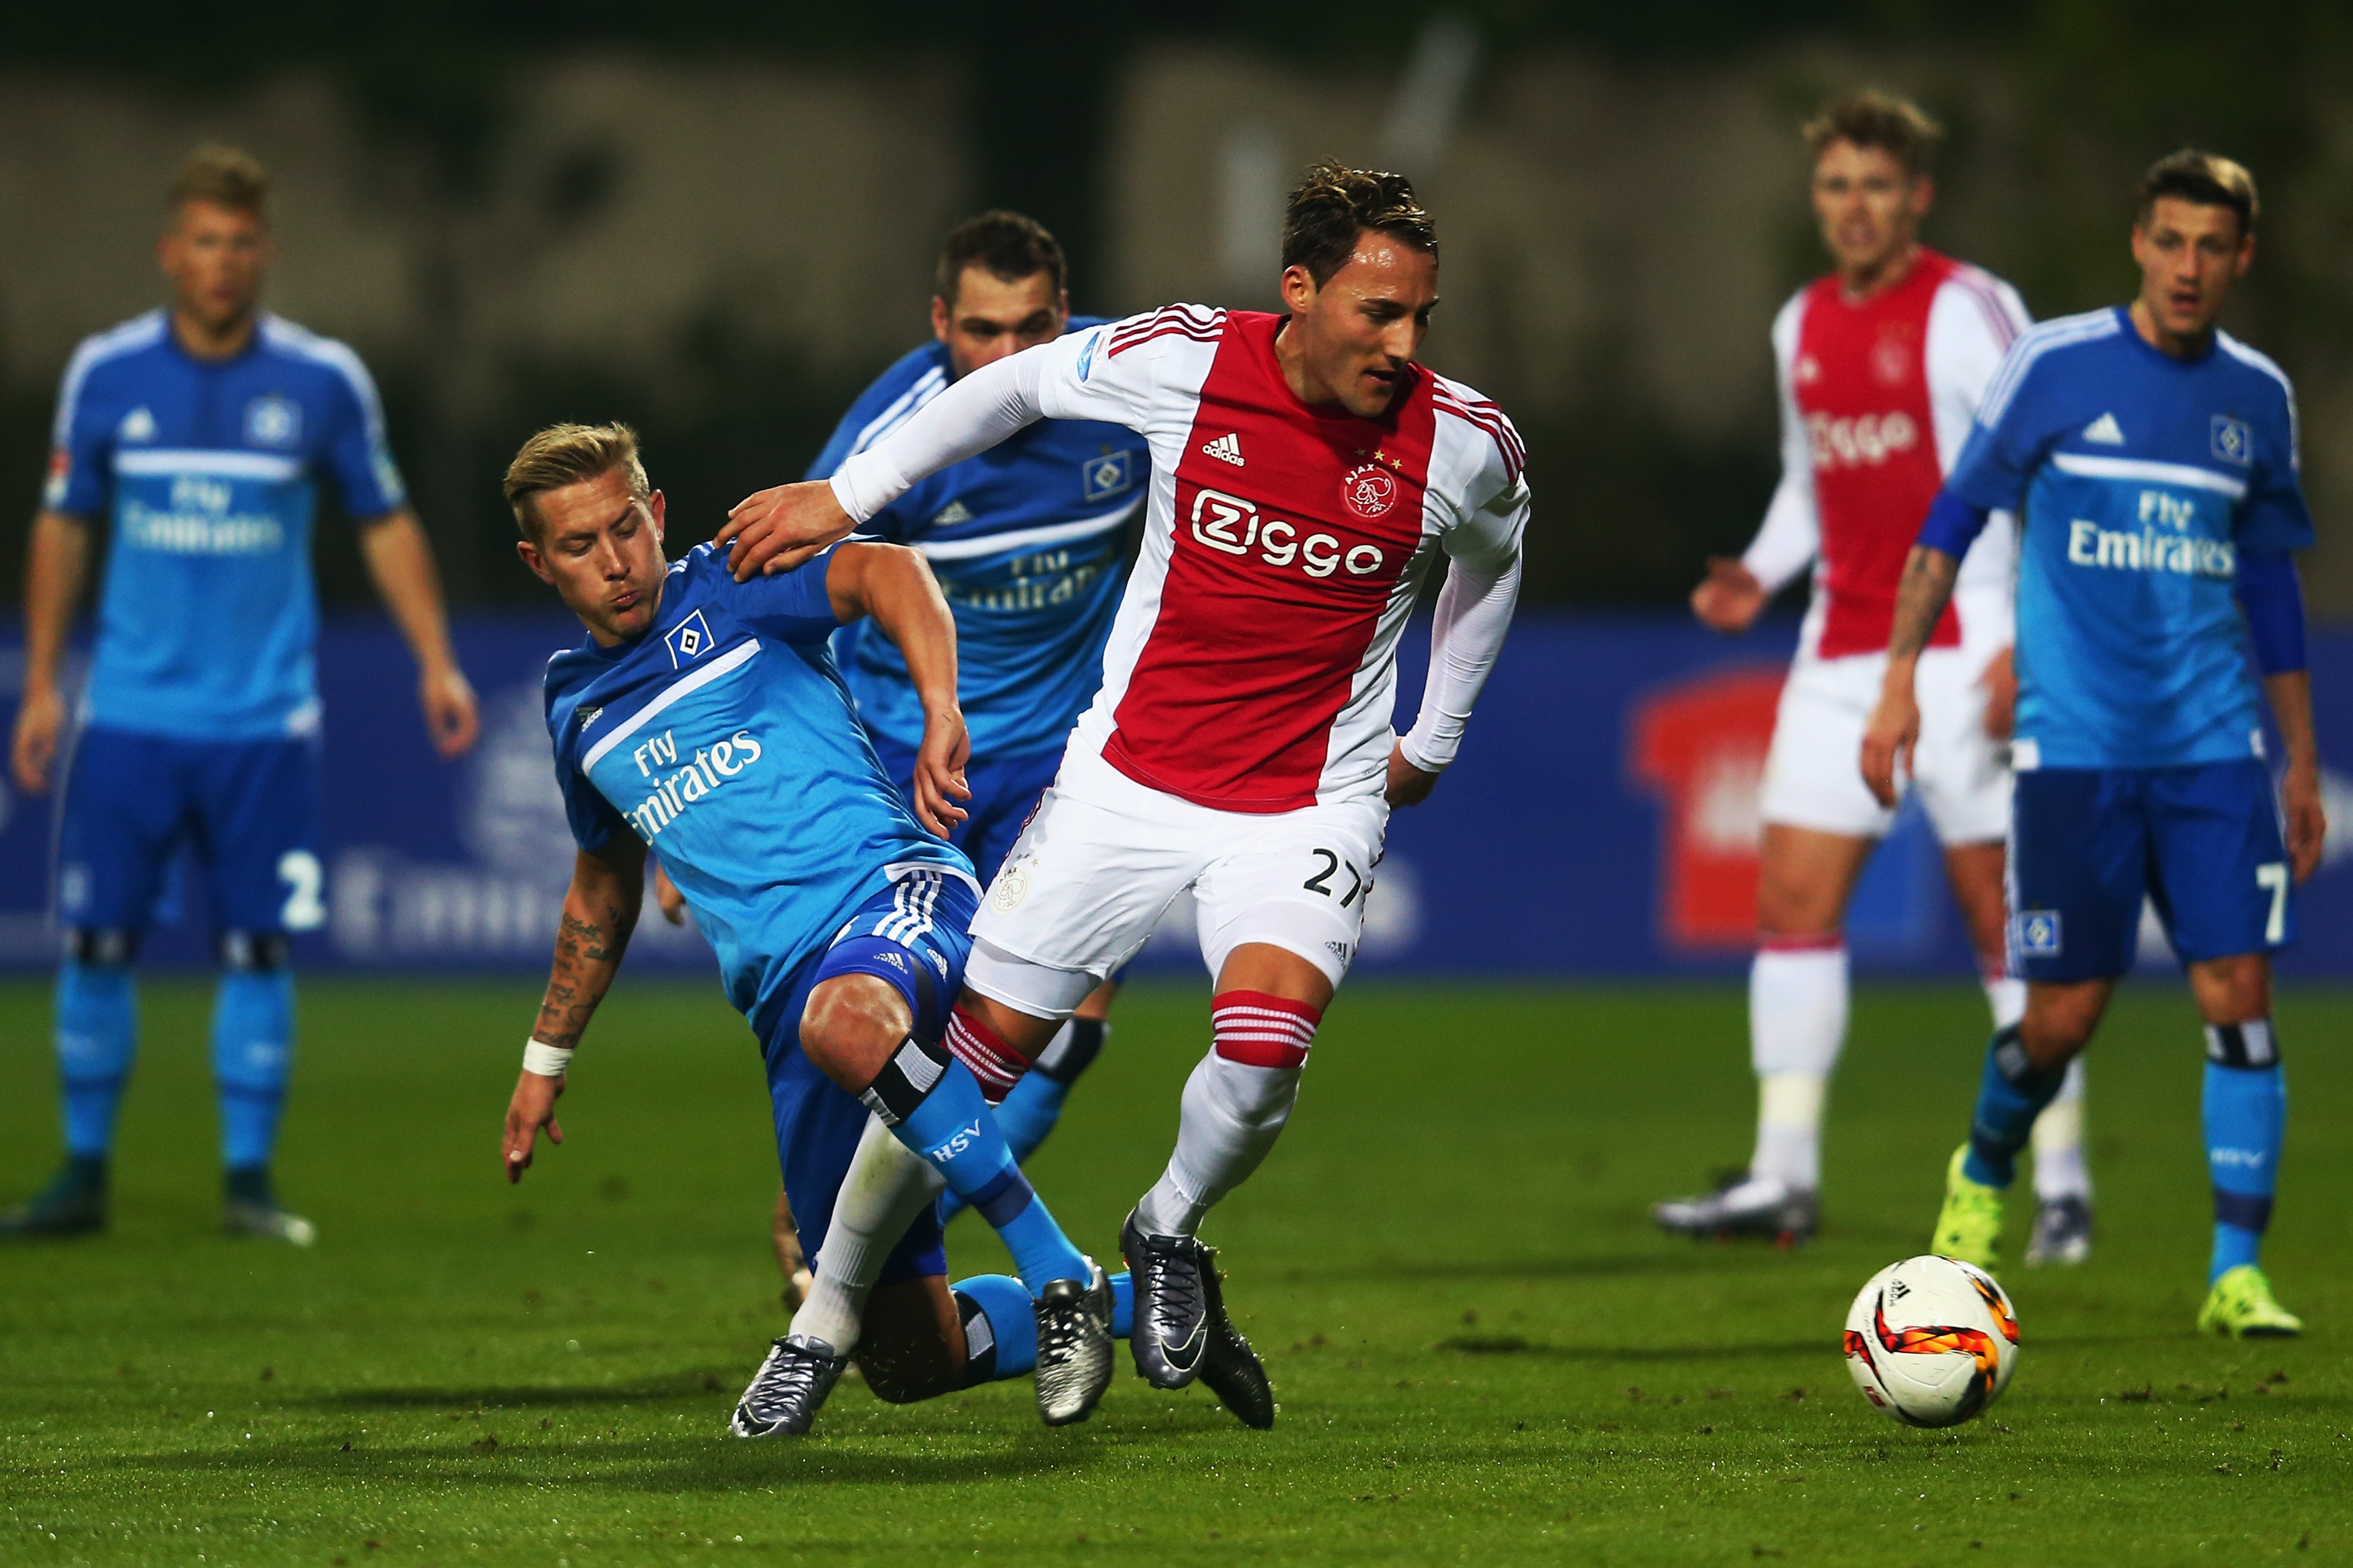 Nemanja Gudelj is set to have a crucial season for Ajax. / Alex Grimm / Bongarts